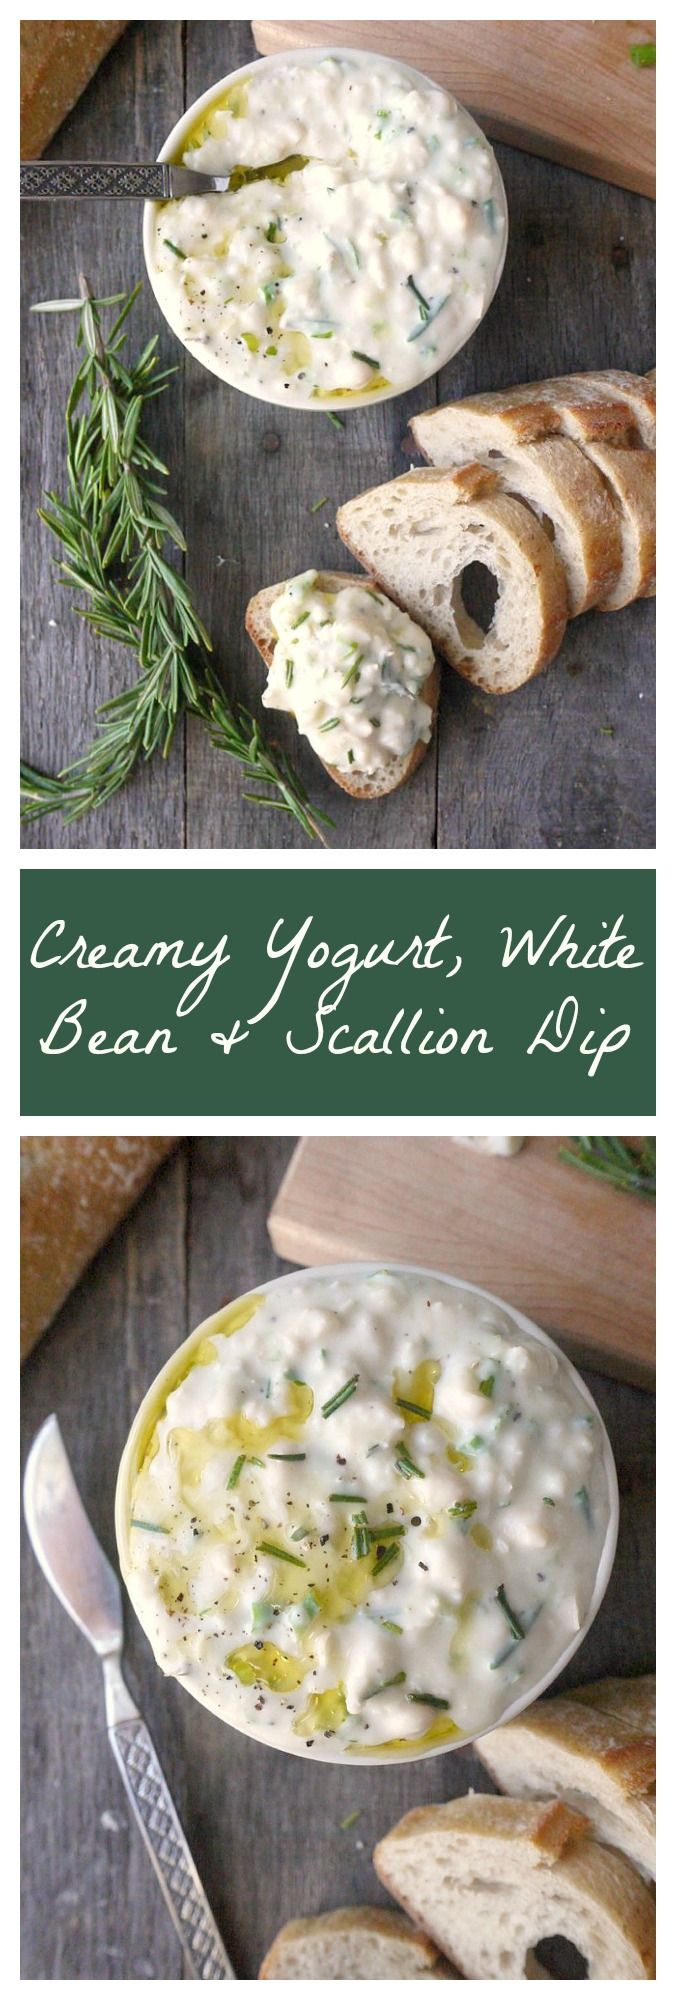 This appetizer whips up in about five minutes and is perfect for holiday entertaining!